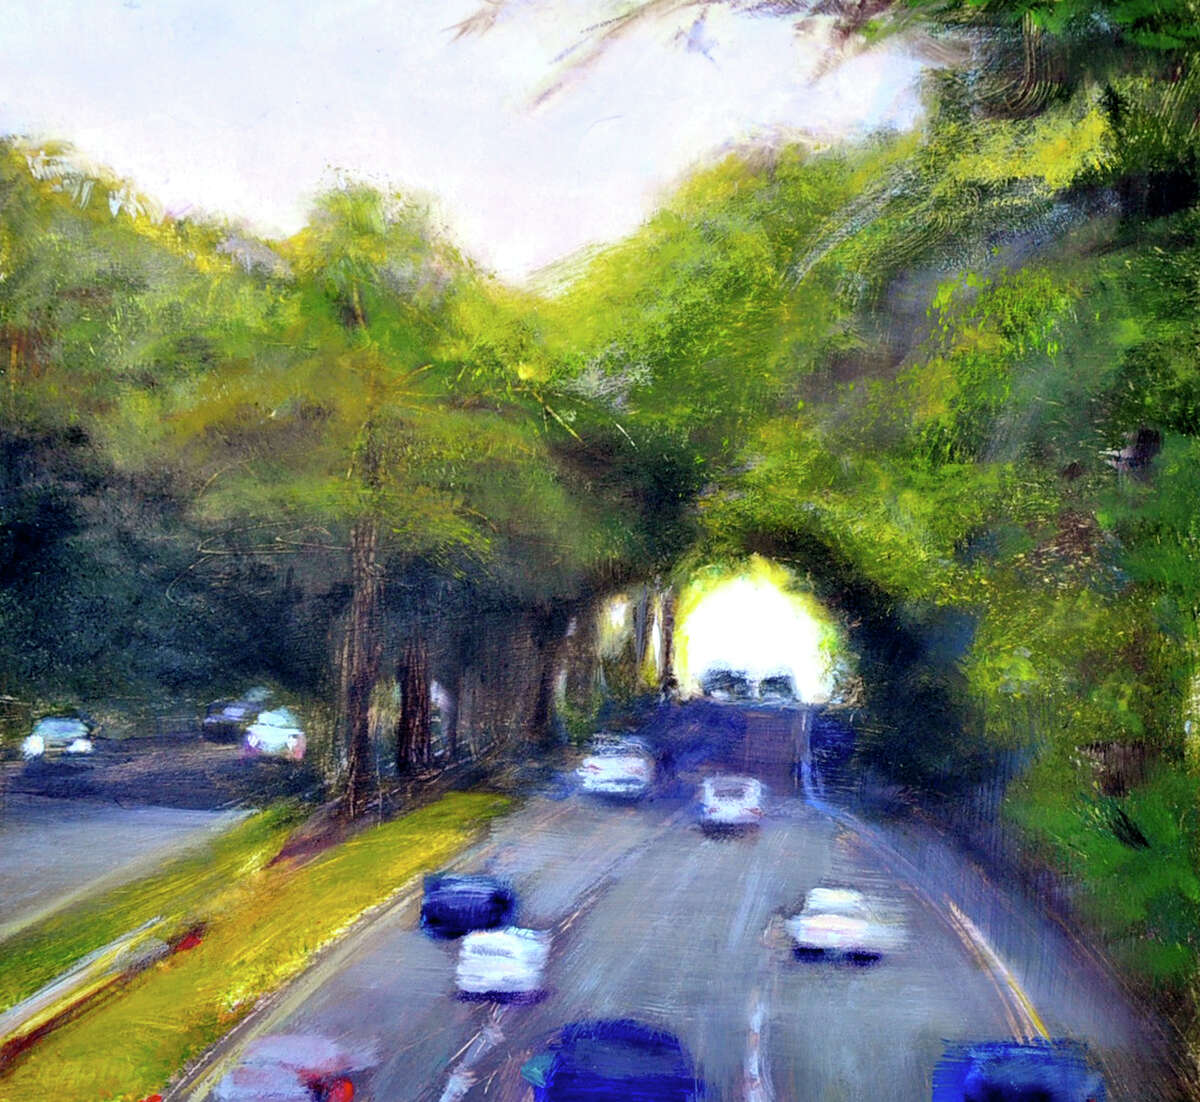 The Merritt's Canopy, by Cynthia Mullins, a Westport painter with a studio in Ridgefield, Conn. Mullins has been painting a Merritt Parkway series of canvases since 2008. The paintings are on display at the Westport Library through August 2013. This year marks the 75th anniversary Merritt Parkway.